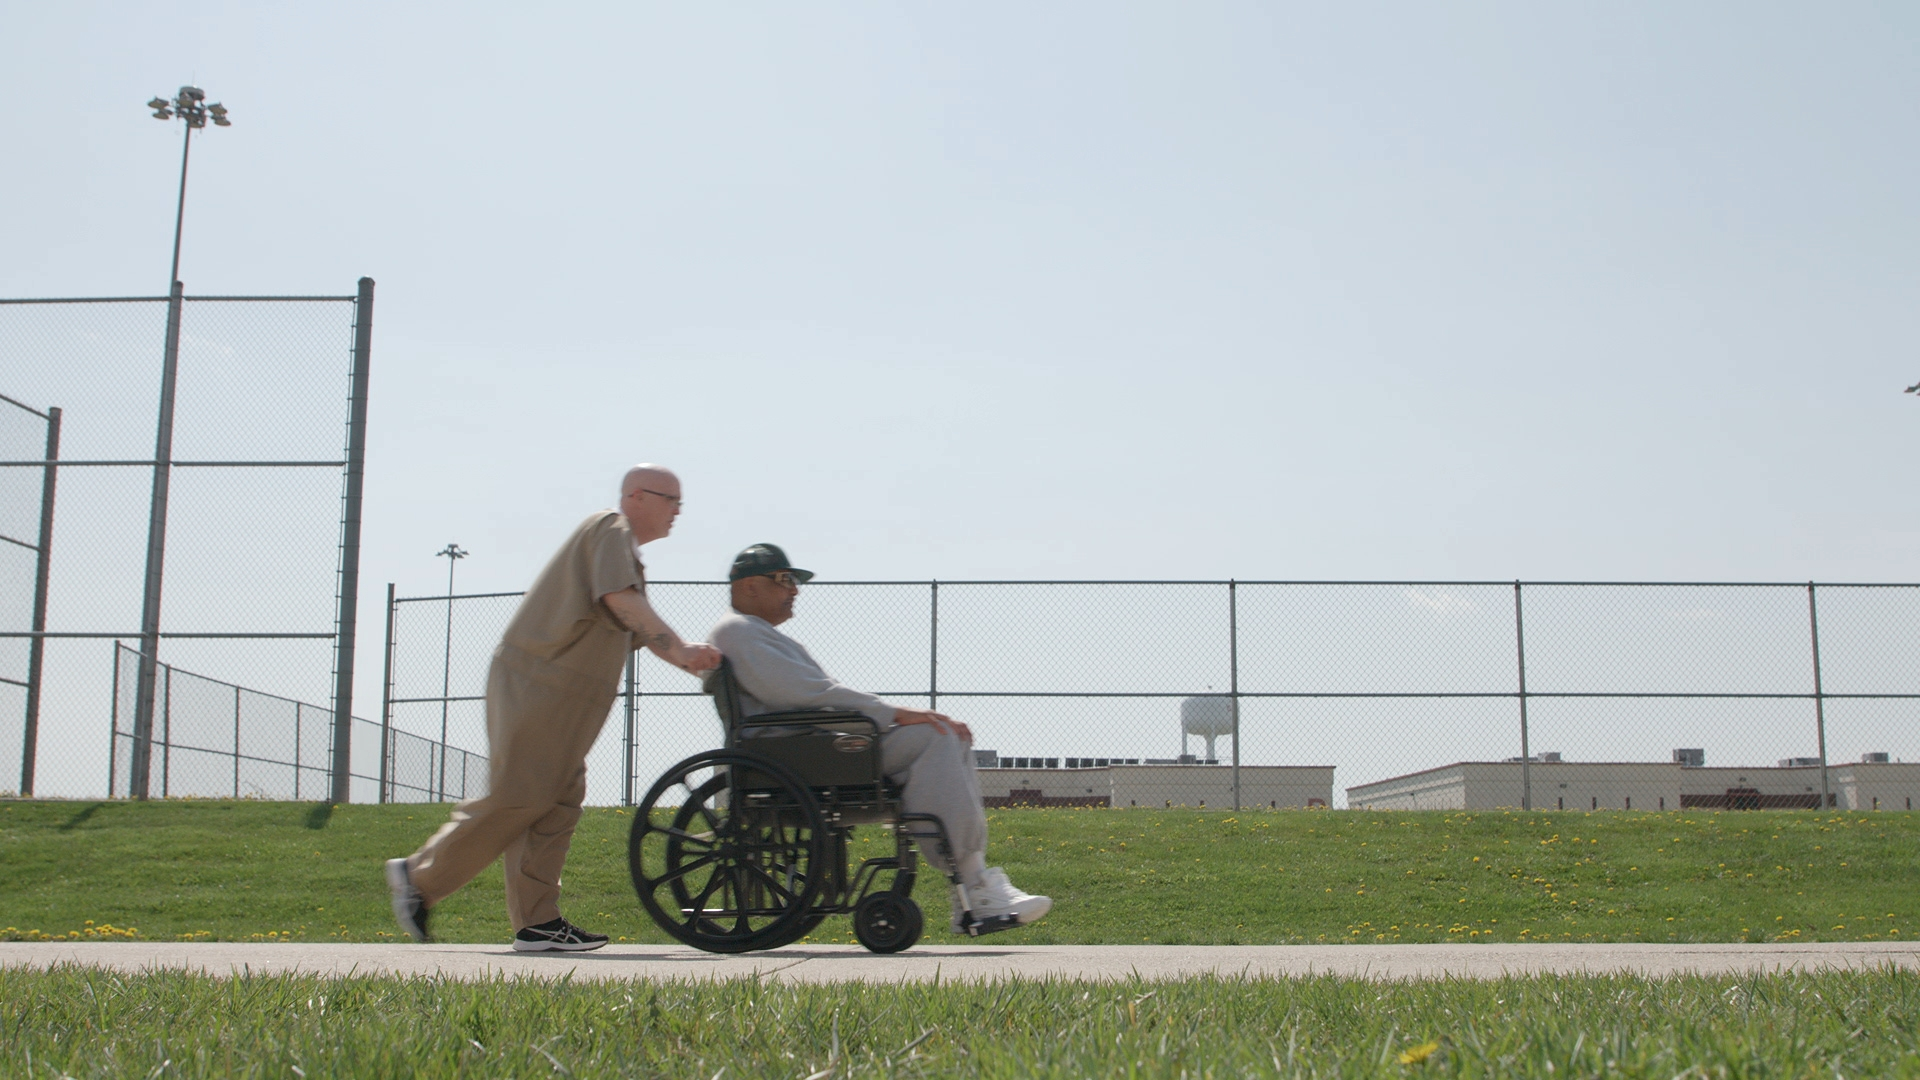 Inmates at Wabash Valley Correctional Institution are taking care of other aging prisoners.